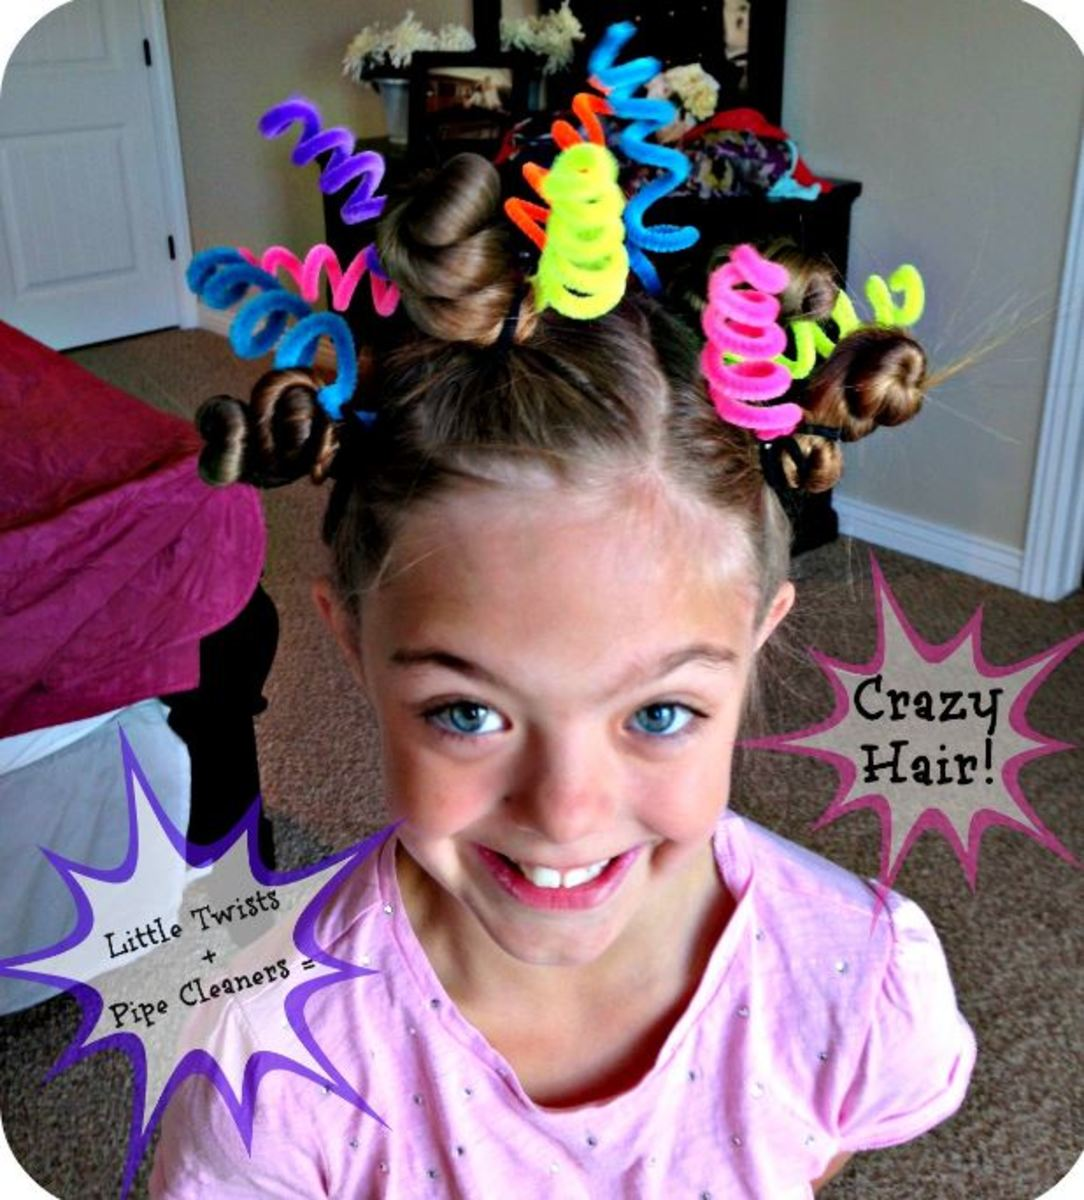 Astounding 11 Wacky Hair Ideas For Exciting Crazy Hair Day At School Bellatory Natural Hairstyles Runnerswayorg